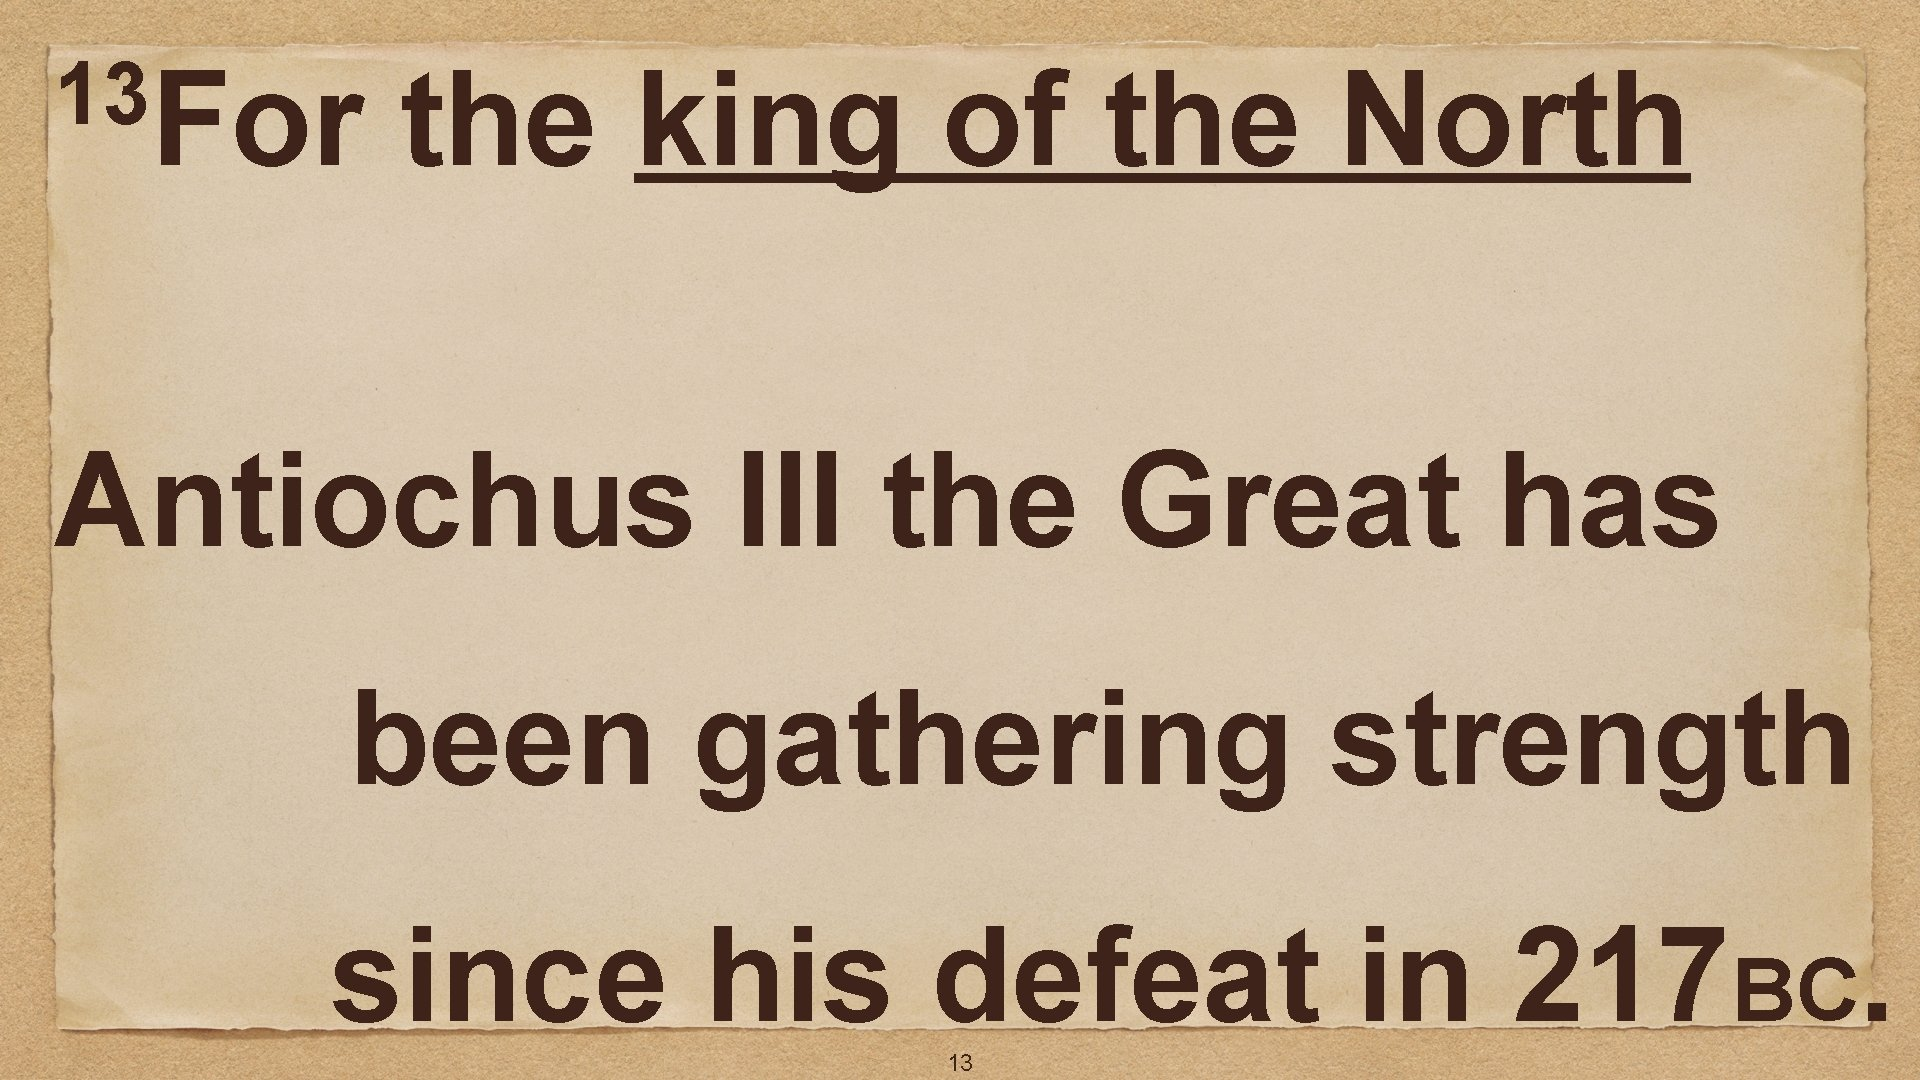 13 For the king of the North Antiochus III the Great has been gathering